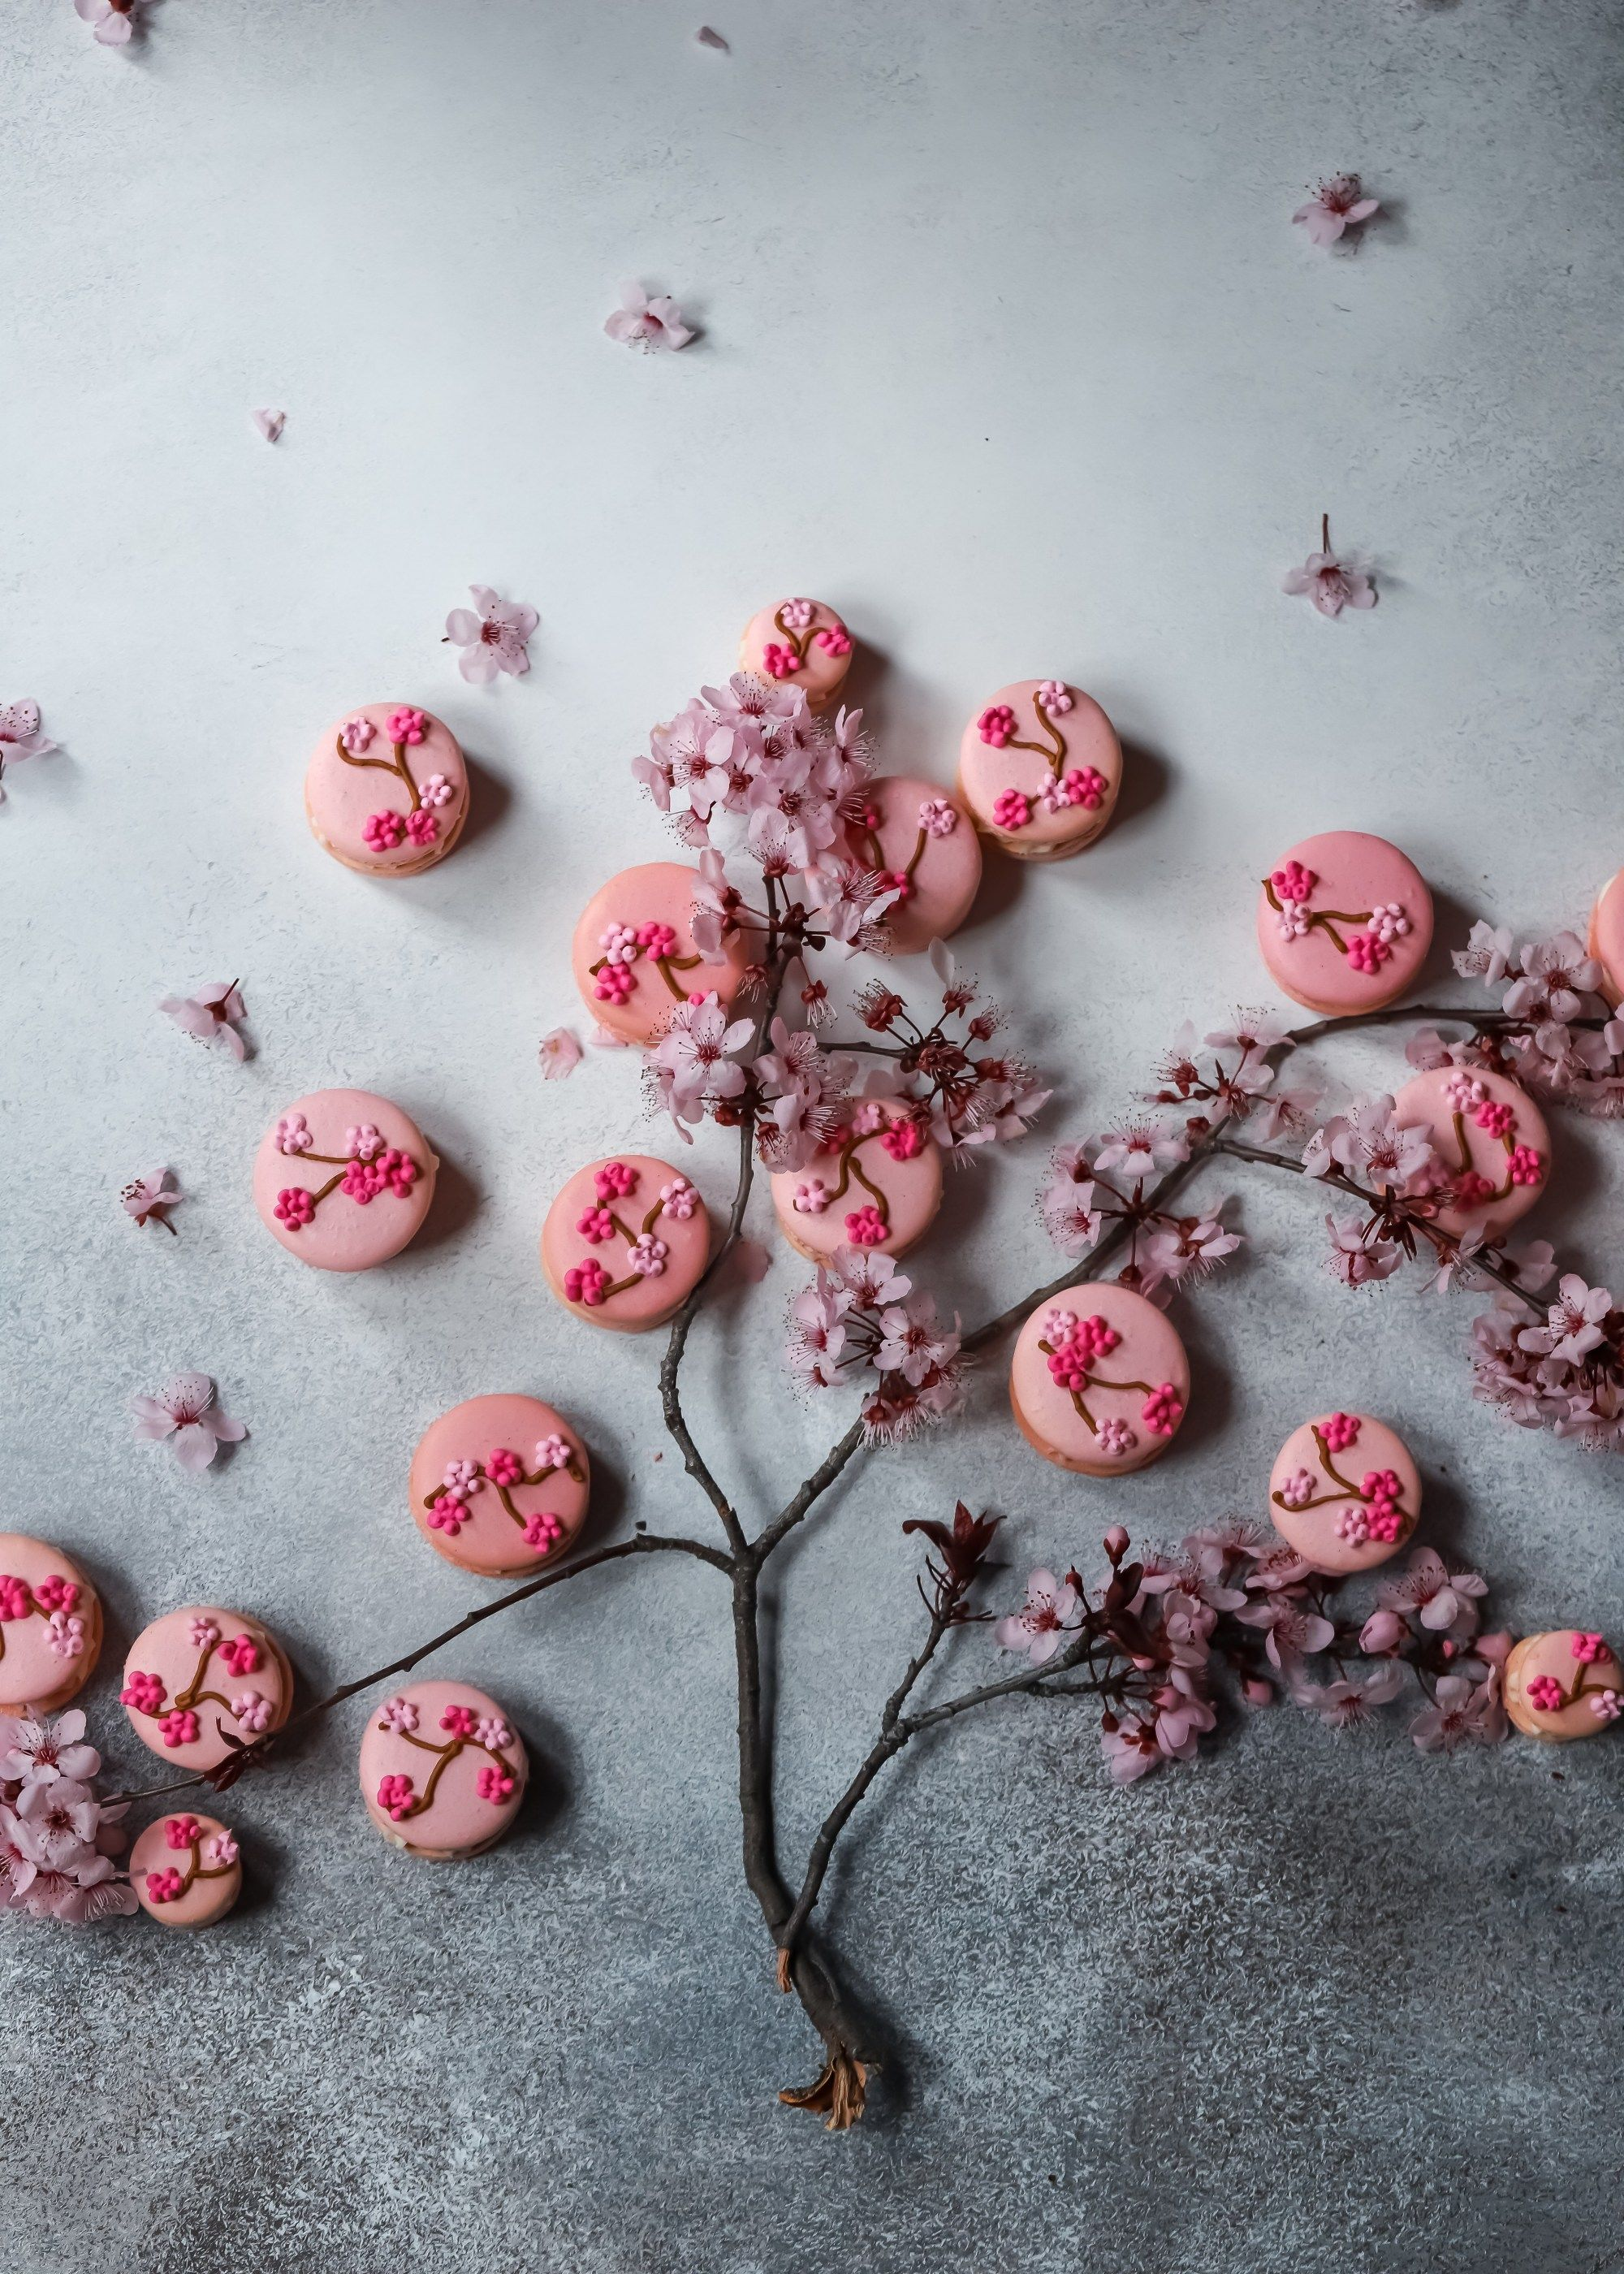 Cherry Blossom Macarons with Buttercream and Jam Filling